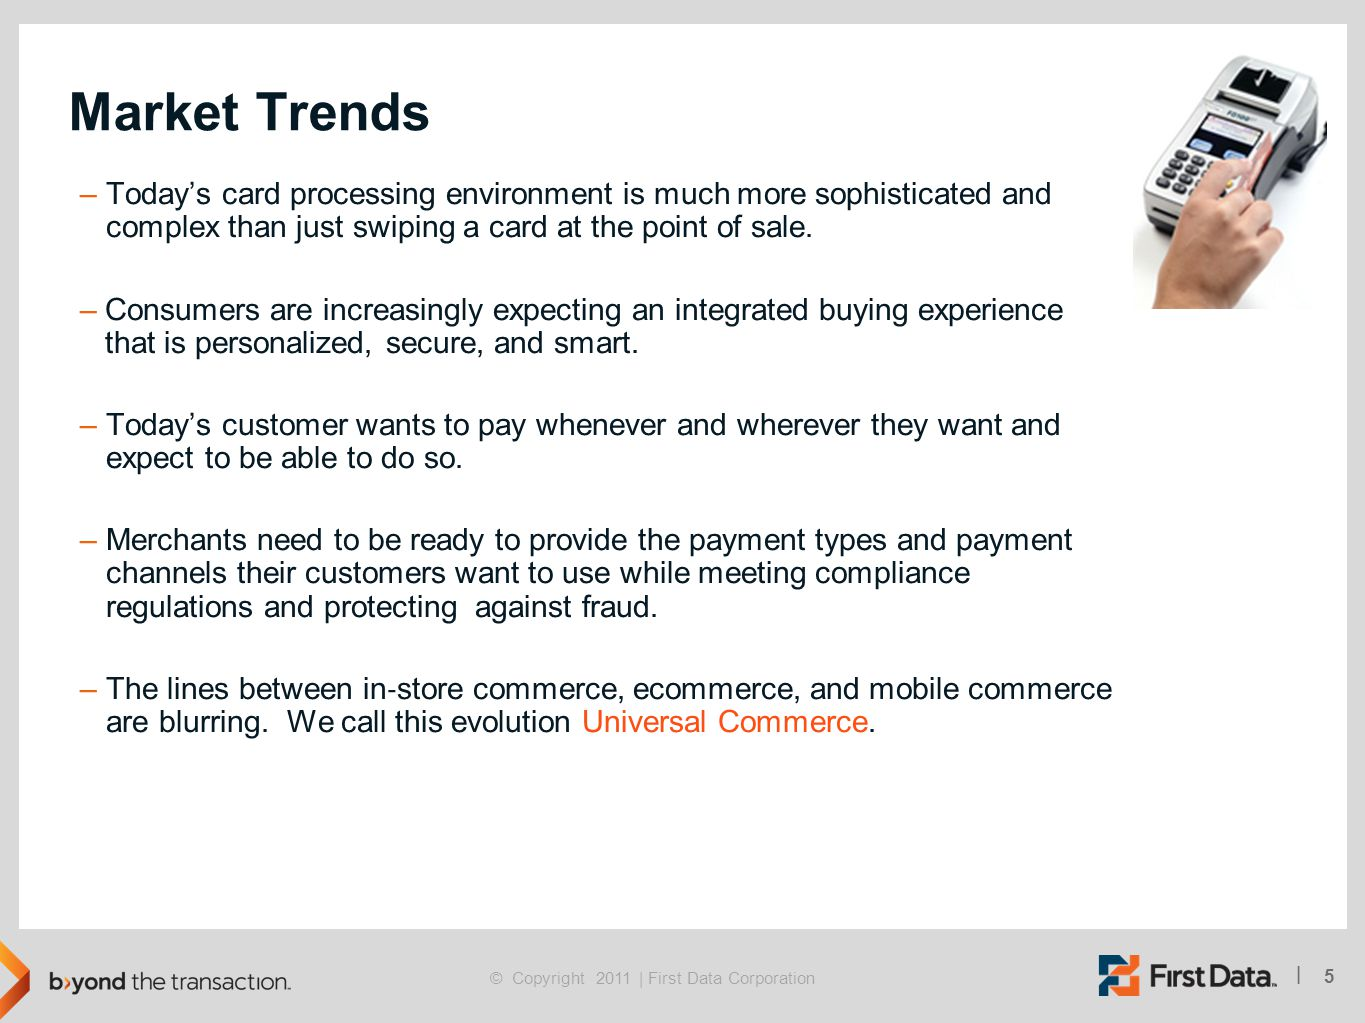 Market Trends Today's card processing environment is much more sophisticated and complex than just swiping a card at the point of sale.